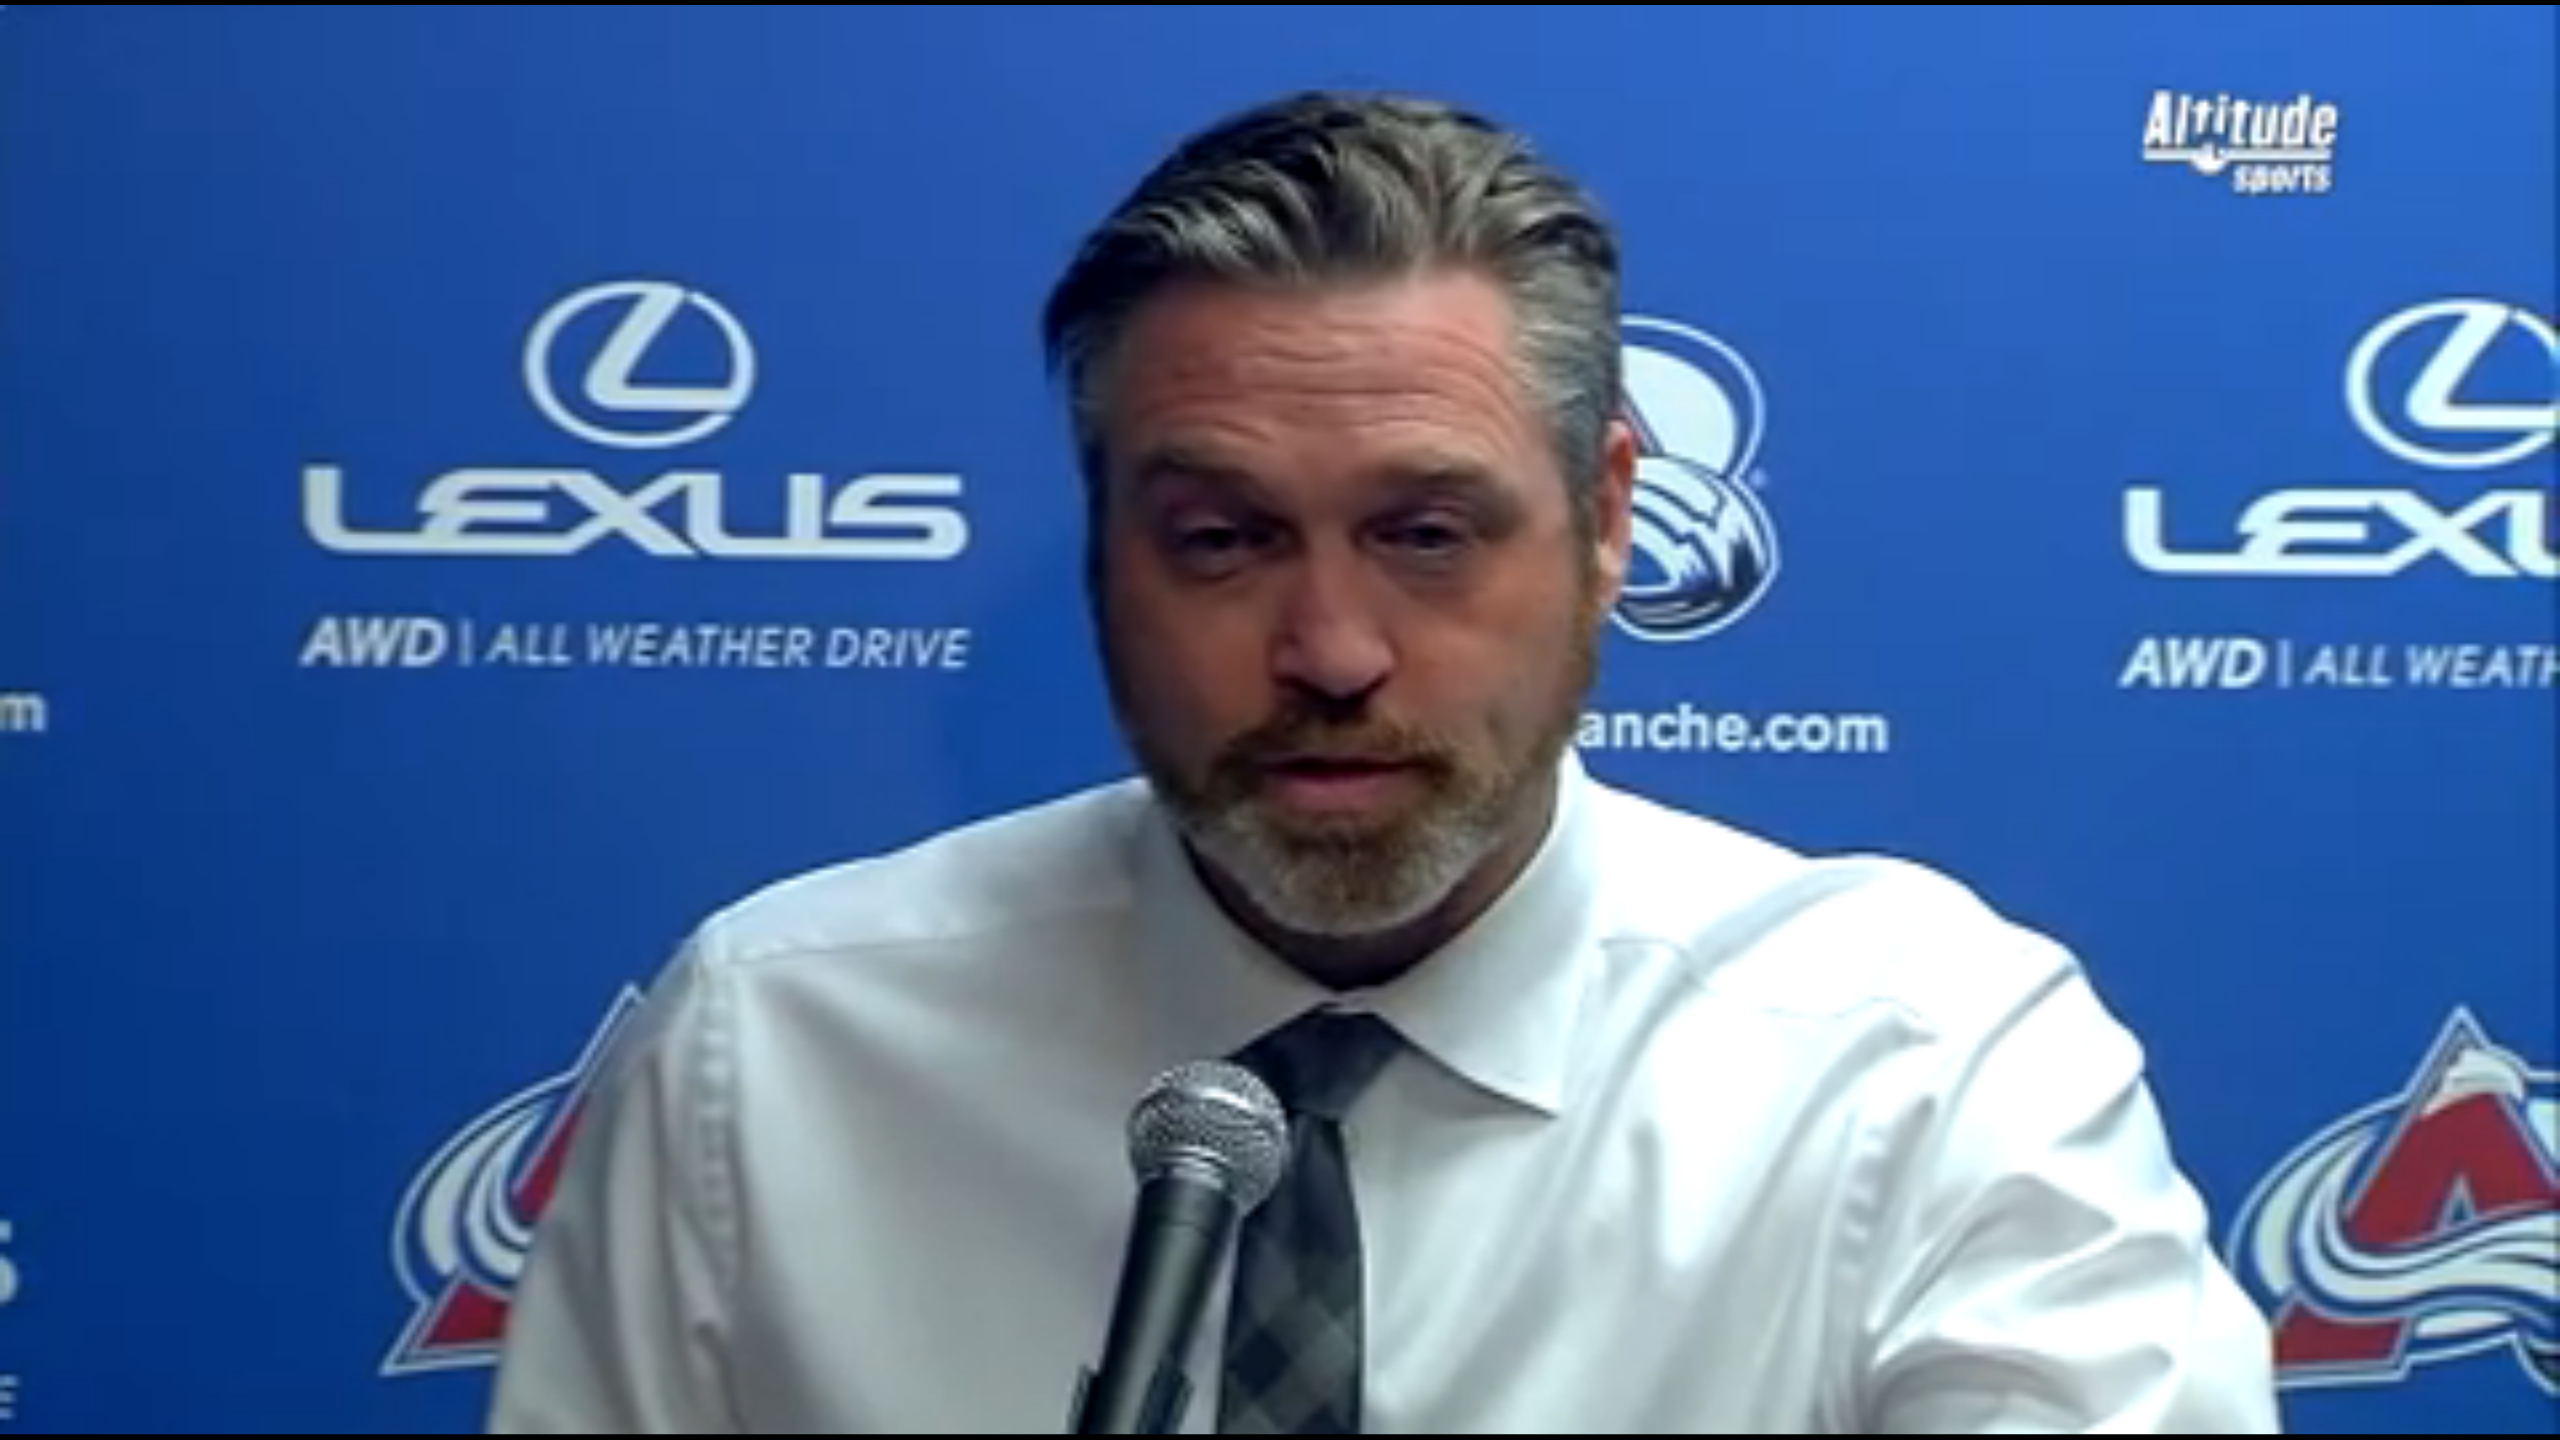 Patrick-Roy-Post-Game-040116.jpg